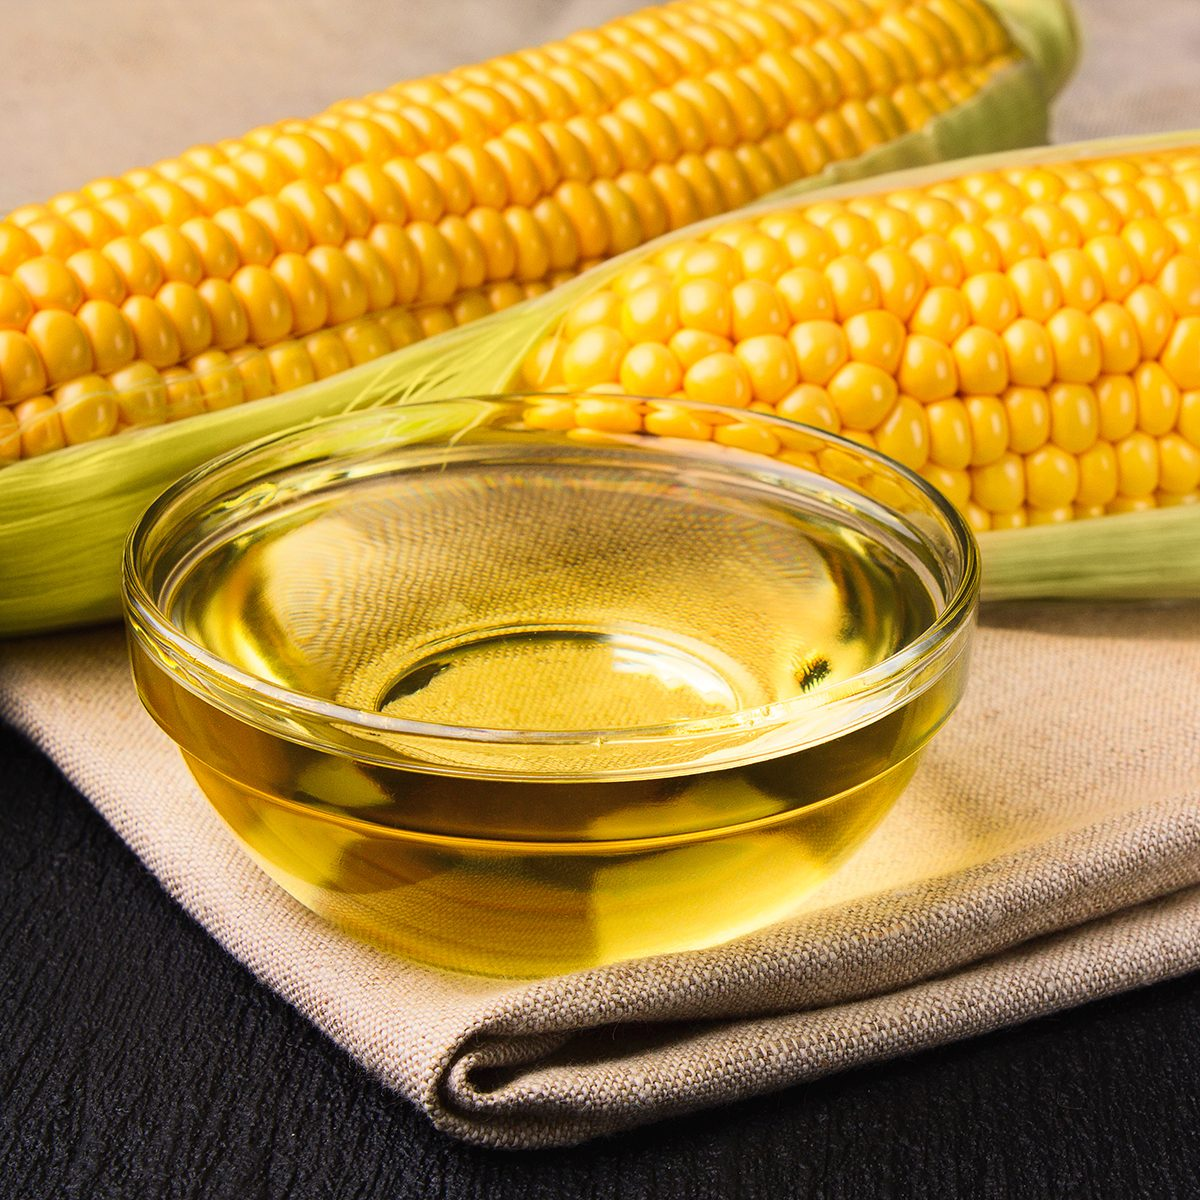 Fresh corn oil in a bowl with ears of corn on a cloth on a slate background